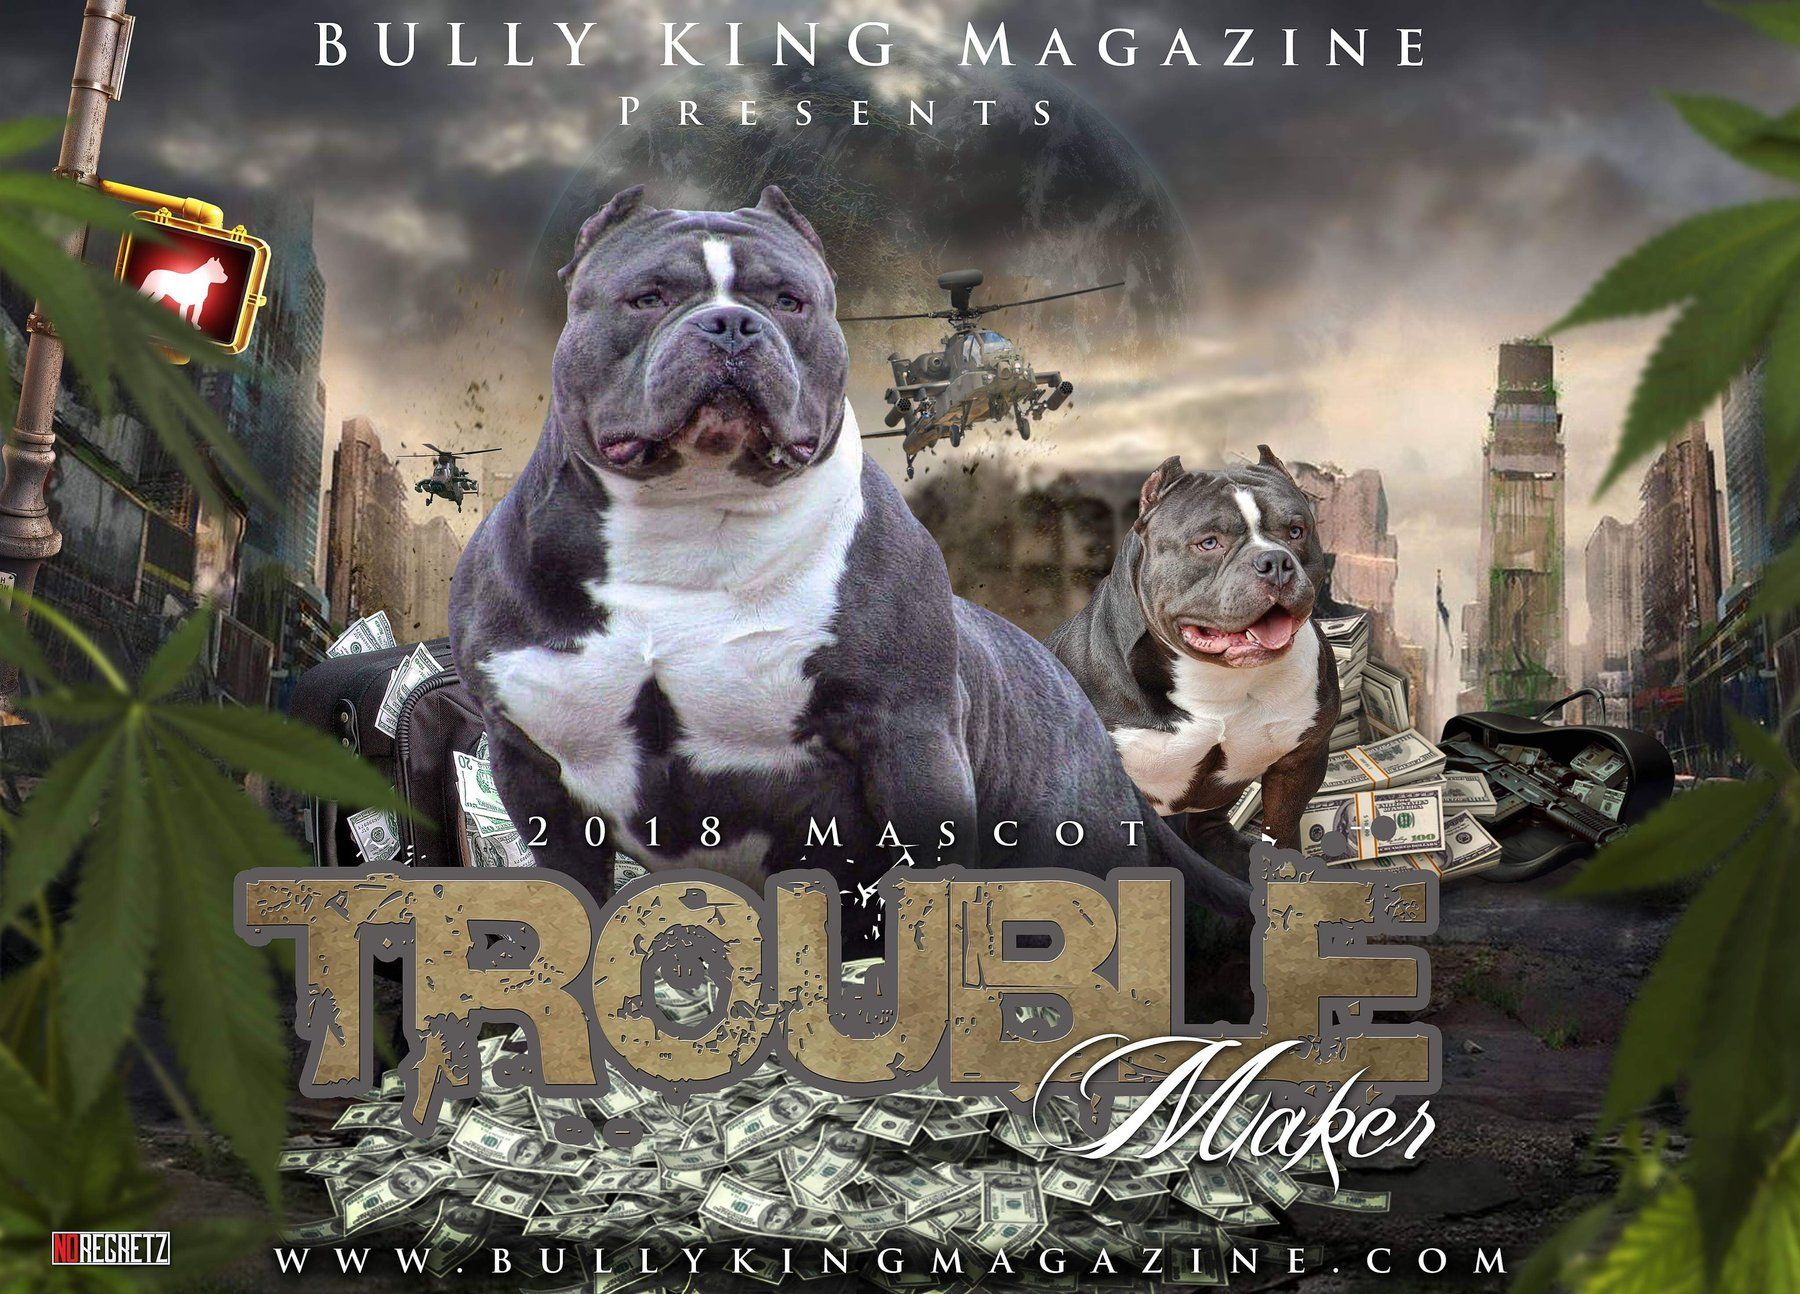 BULLY KING Magazine | The #1 American Bully Magazine | News